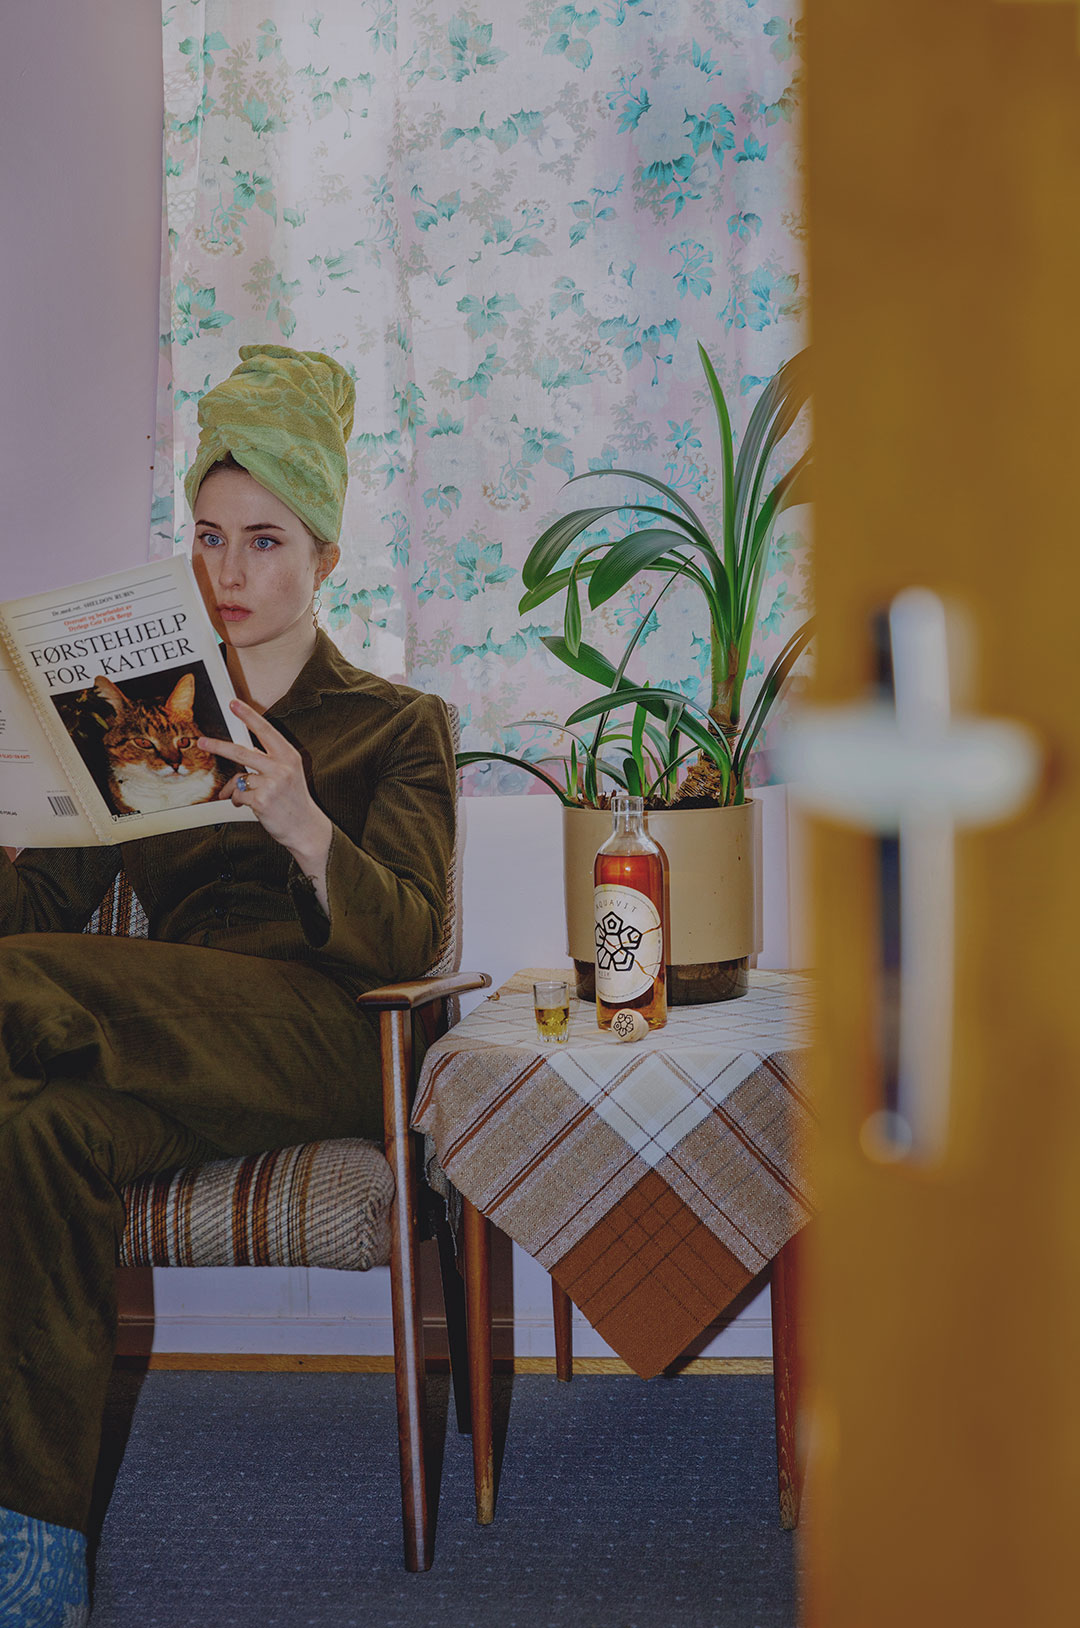 A woman reading a book whilst sipping on MEIR Classic aquavit.